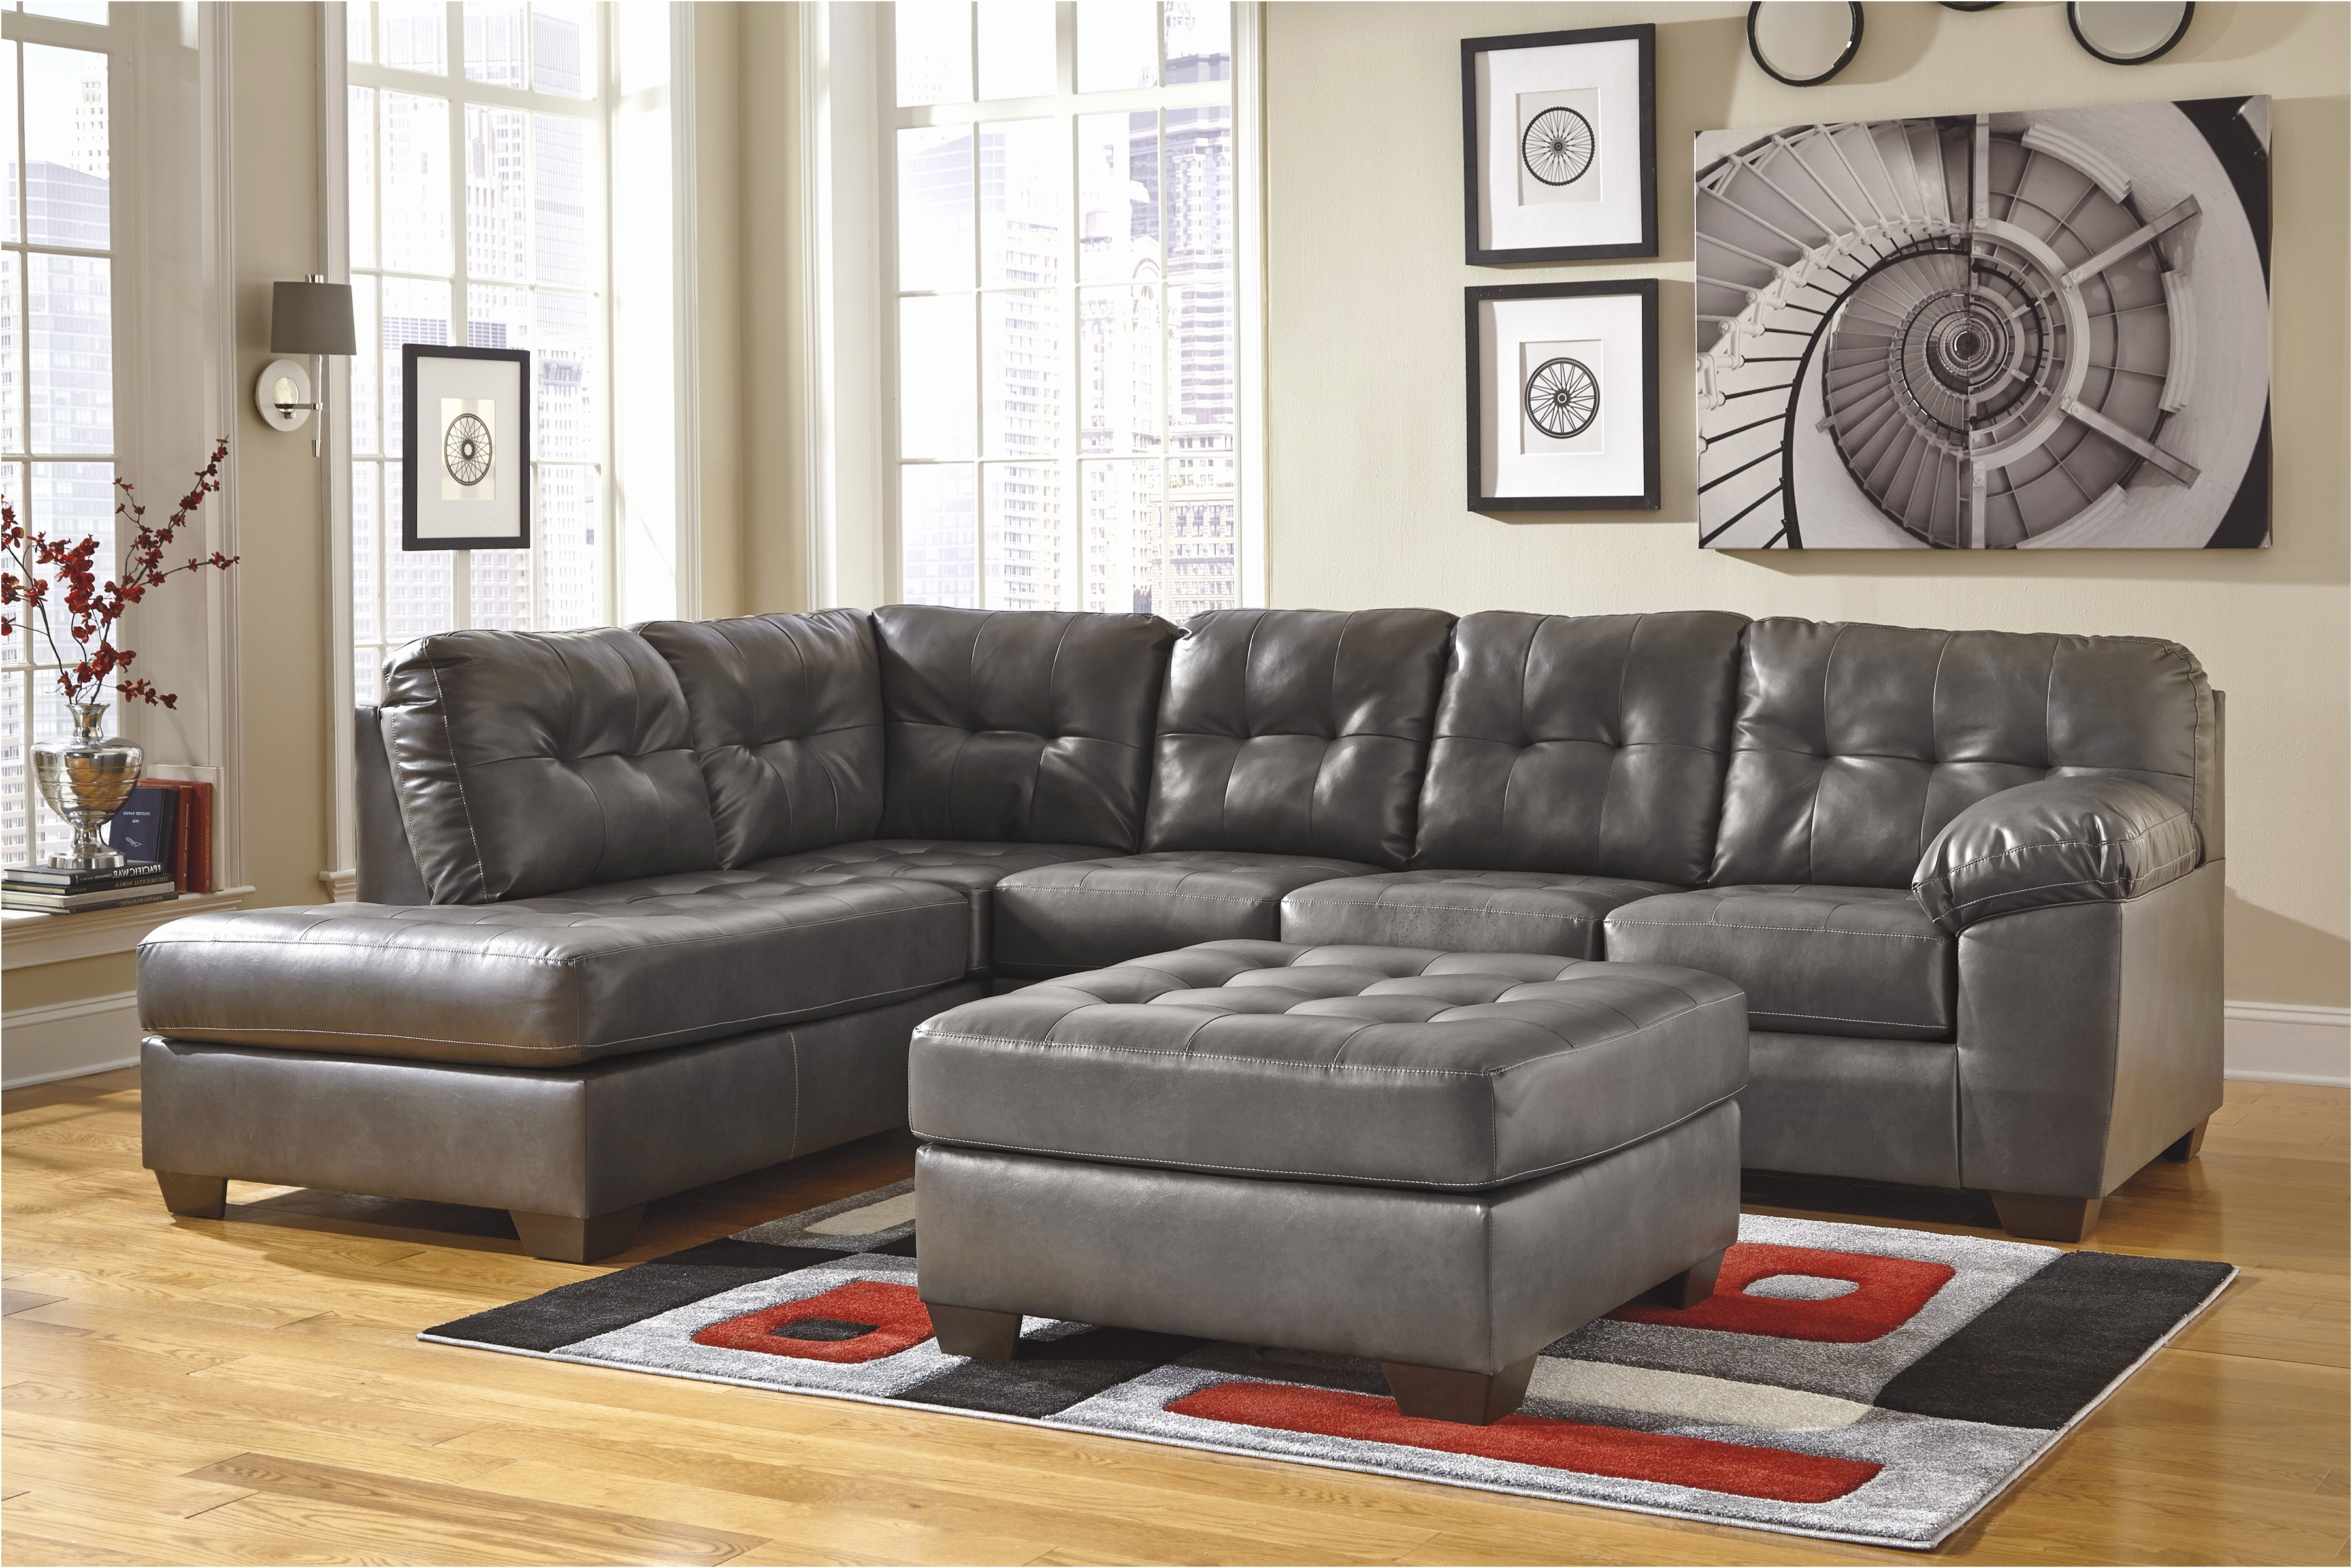 Faux Leather Sectional Sofas Intended For Fashionable Uncategorized (View 11 of 15)